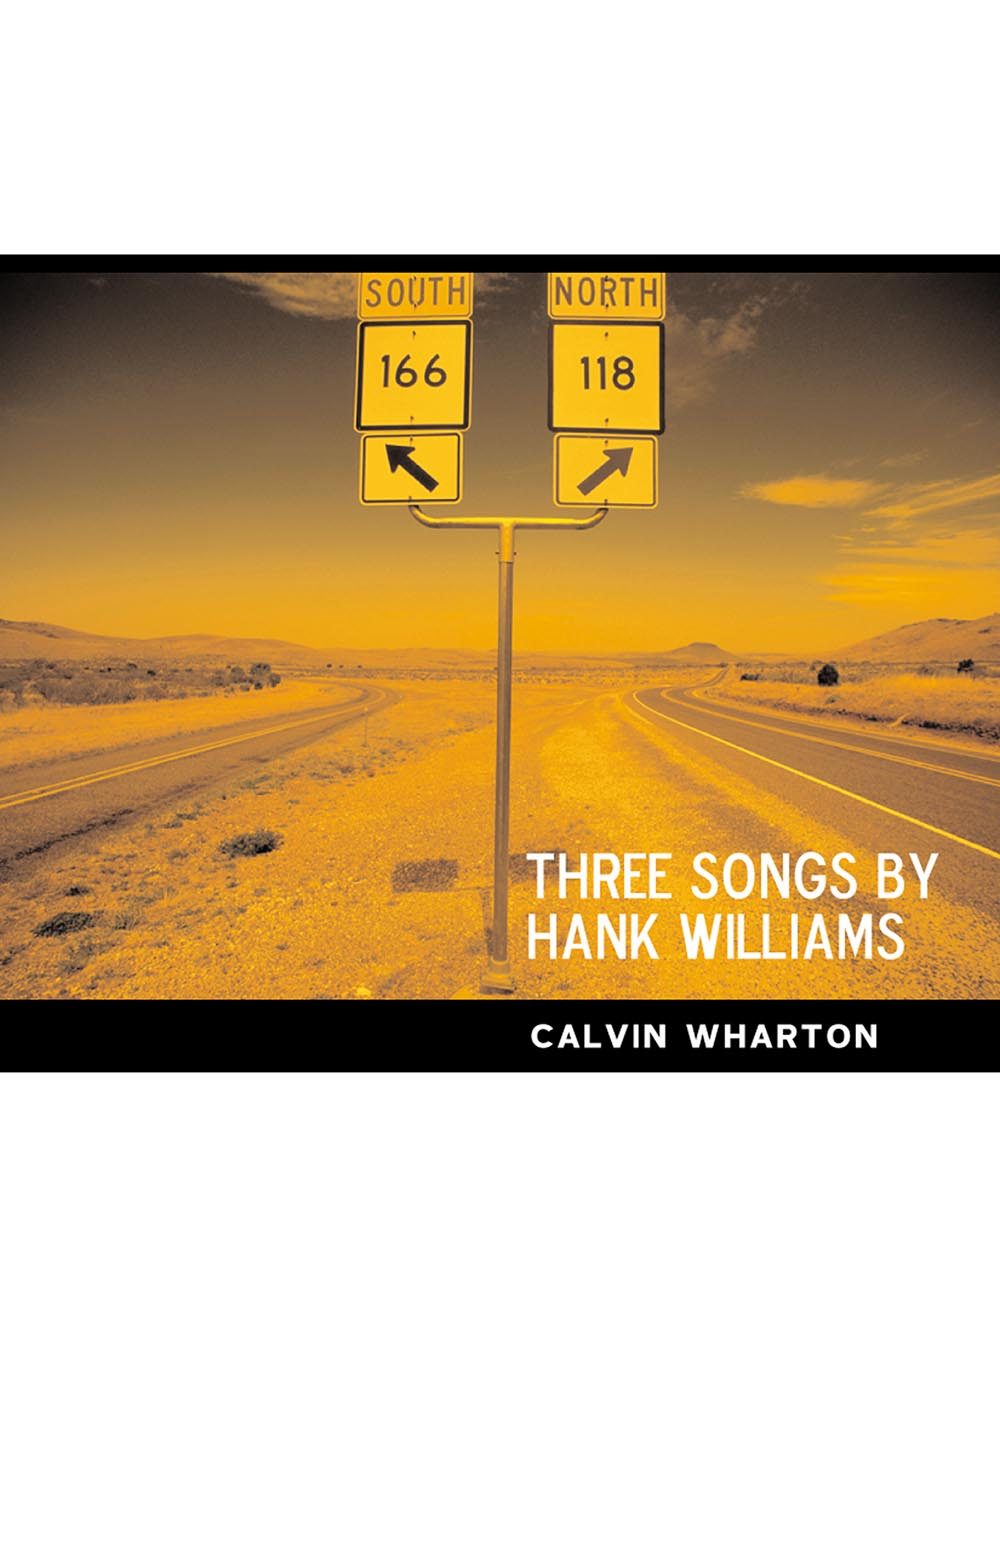 Three Songs by Hank Williams by Calvin Wharton